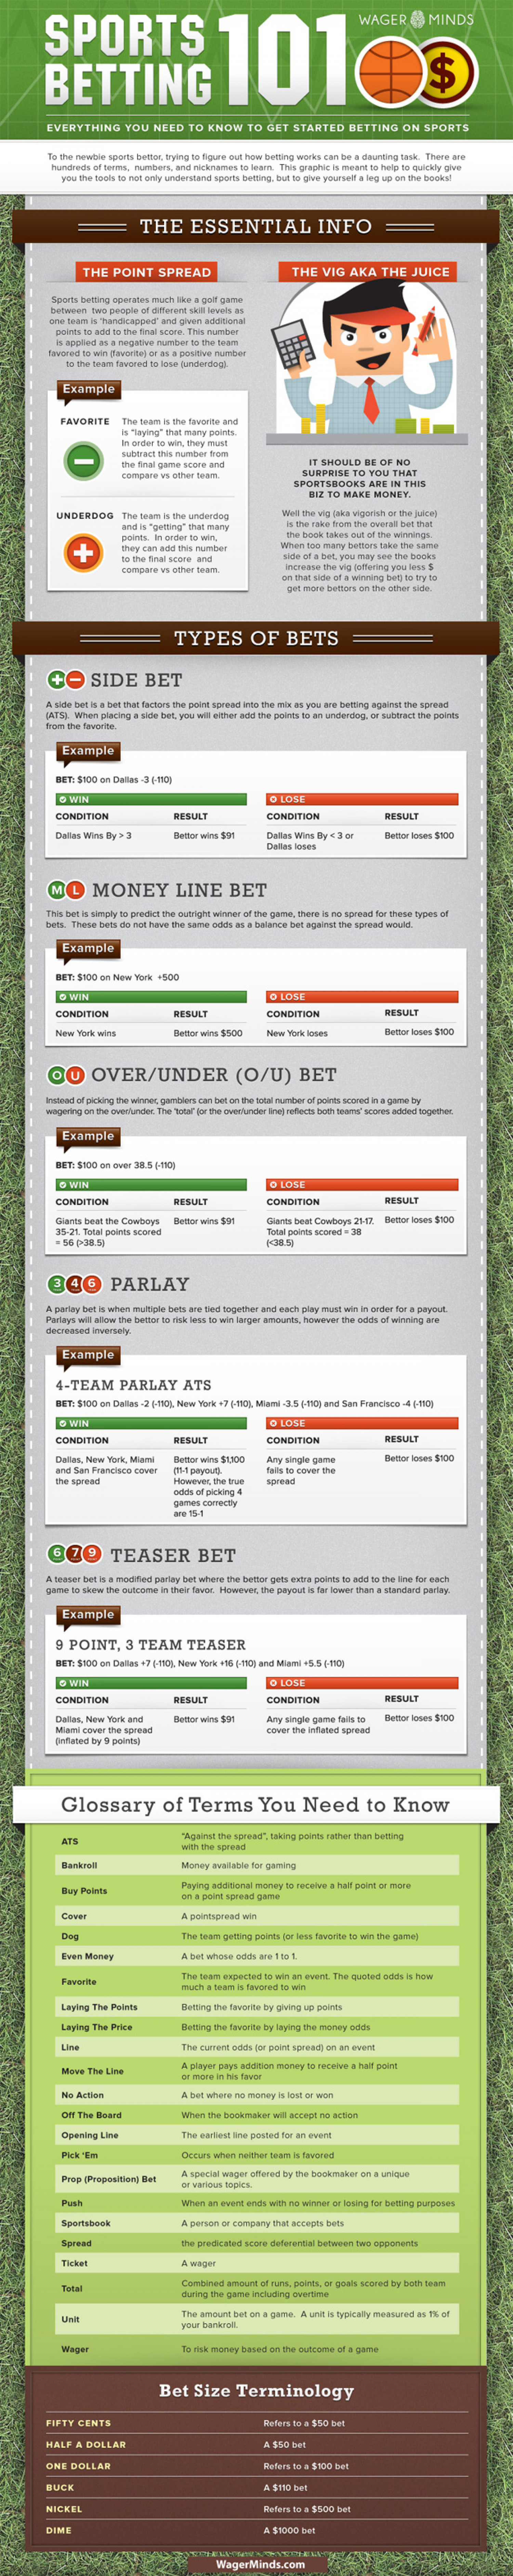 Sports gambling terminology freecasino